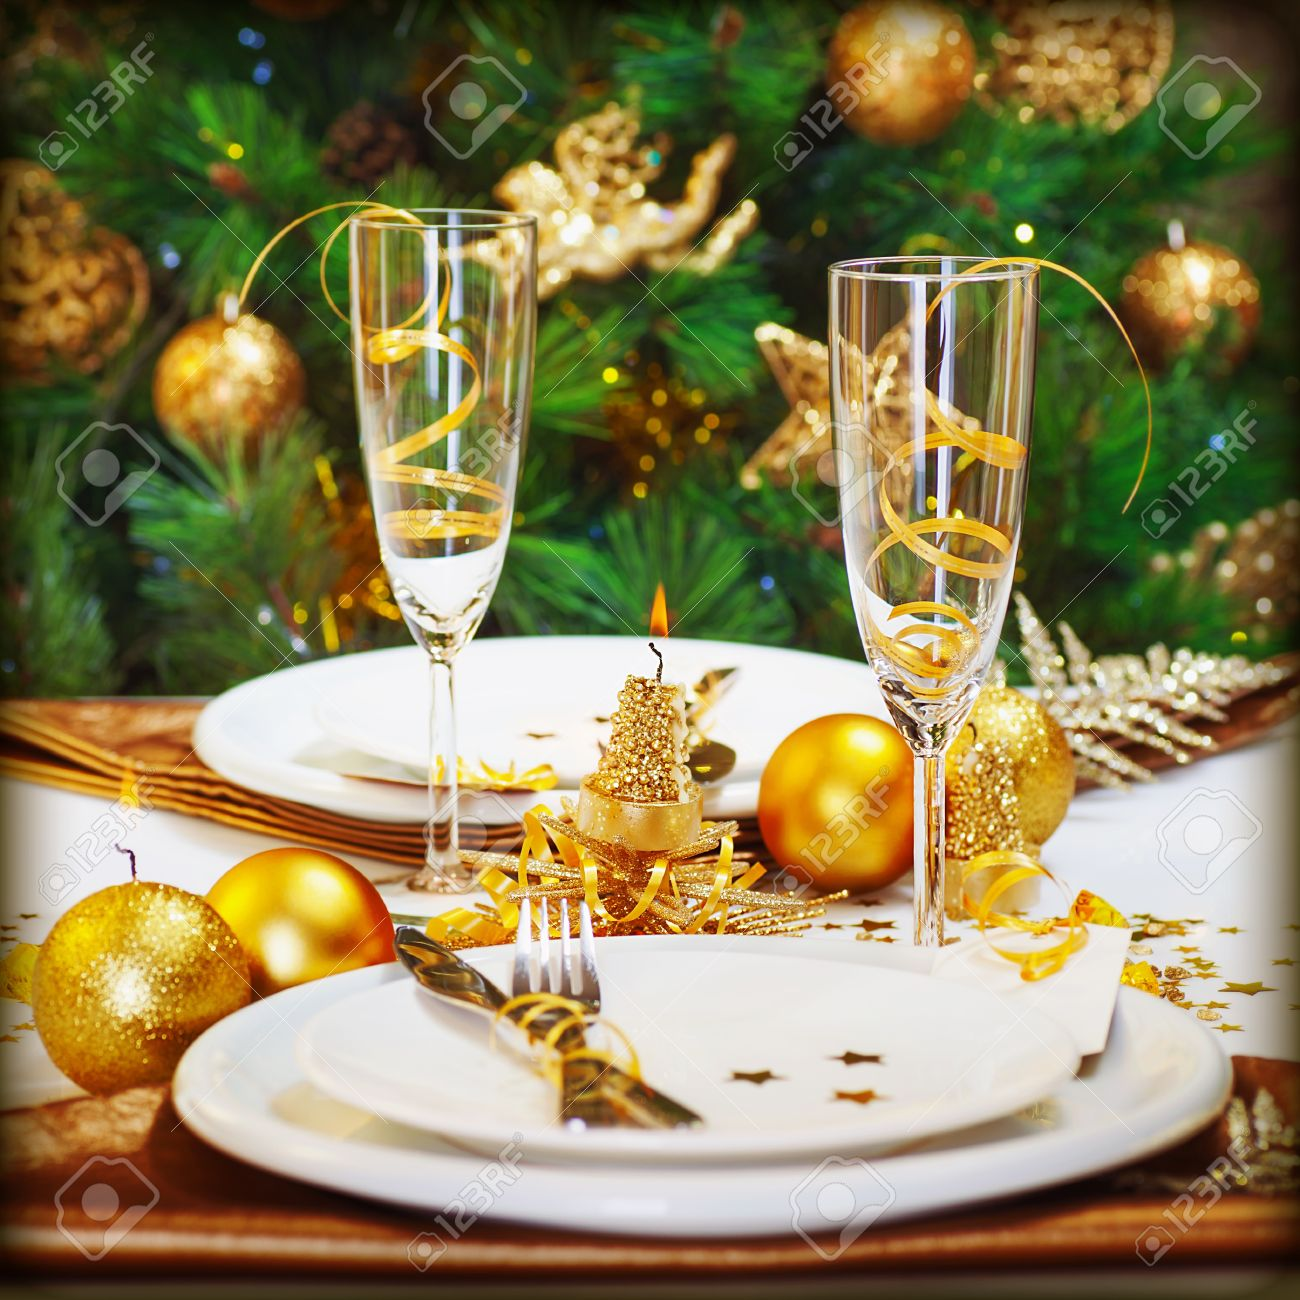 Restaurant table for two - Image Of Christmas Dinner In Restaurant Christmastime Table Setting Over Decorated Fir Tree Background